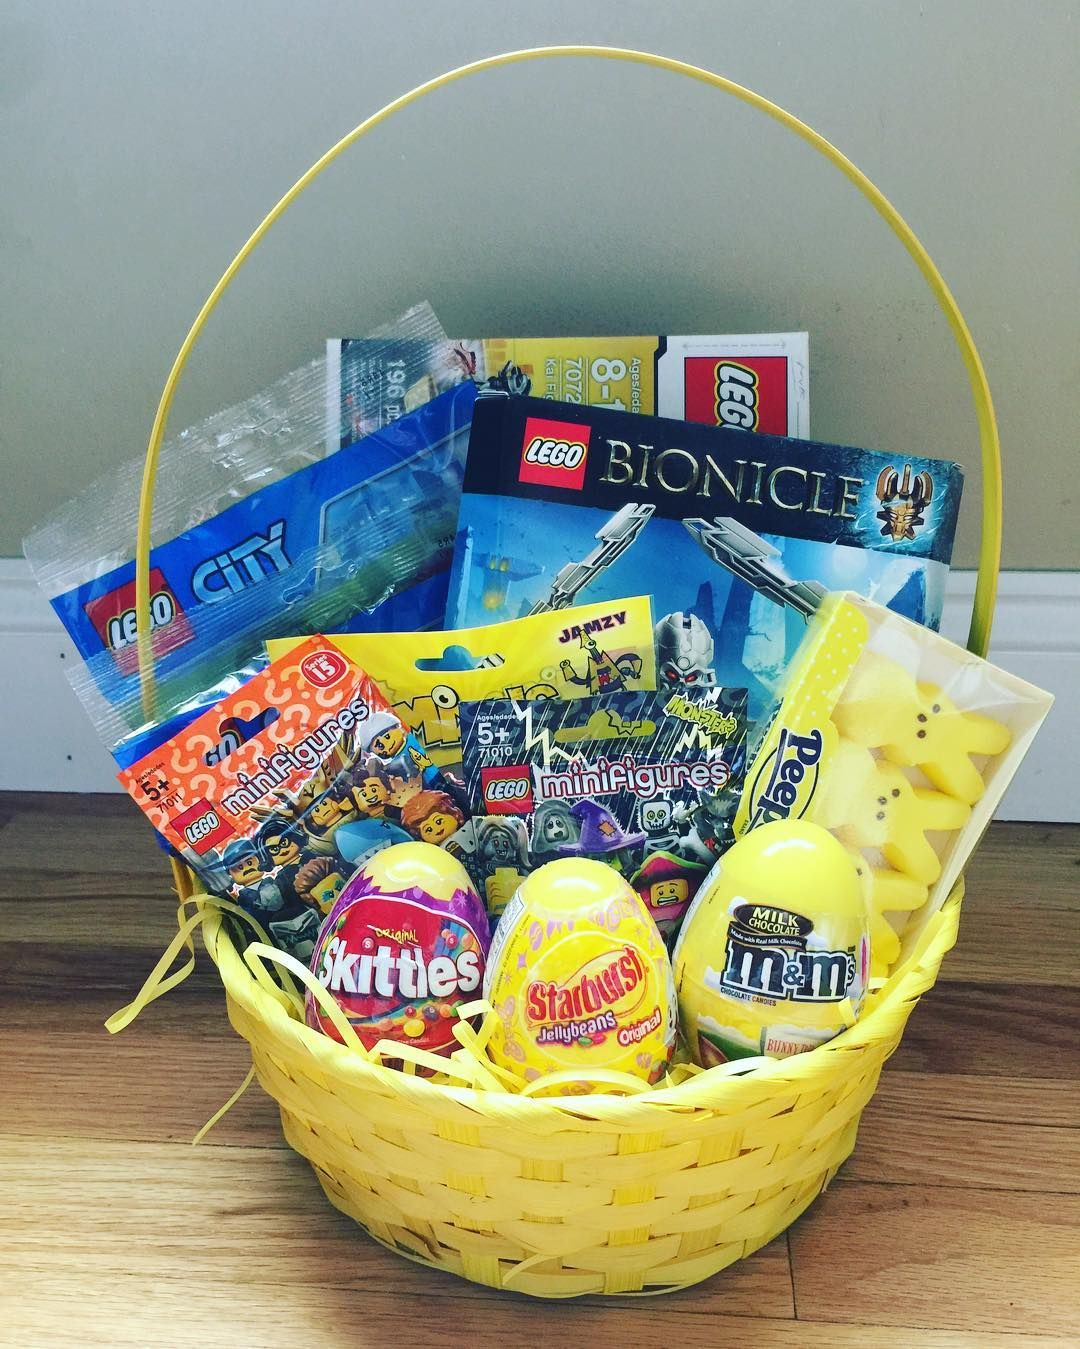 We have lego themed easter baskets for sale contact us if we have lego themed easter baskets for sale contact us if interested lego negle Choice Image